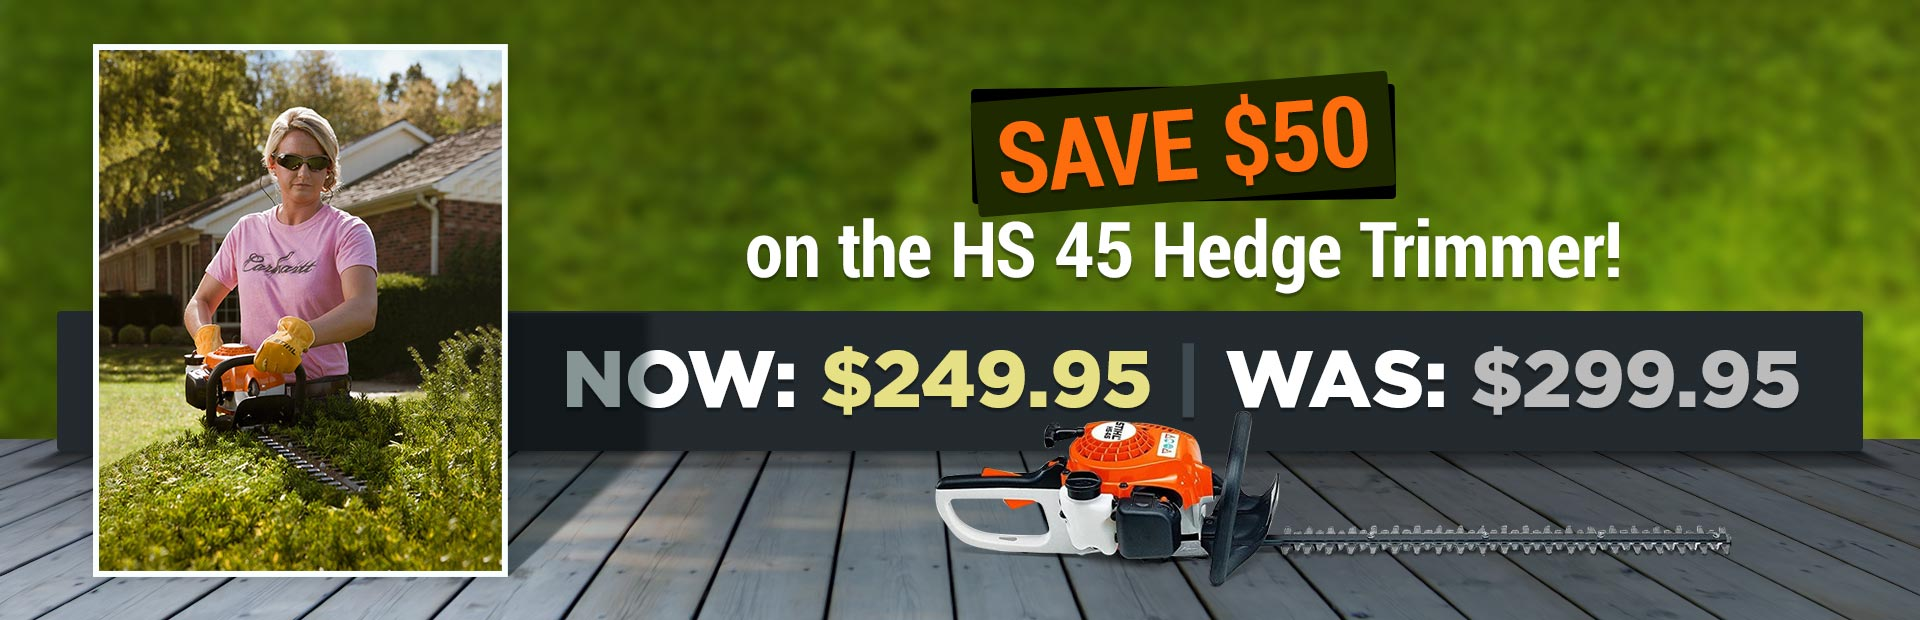 Save $50 on the STIHL HS 45 hedge trimmer!